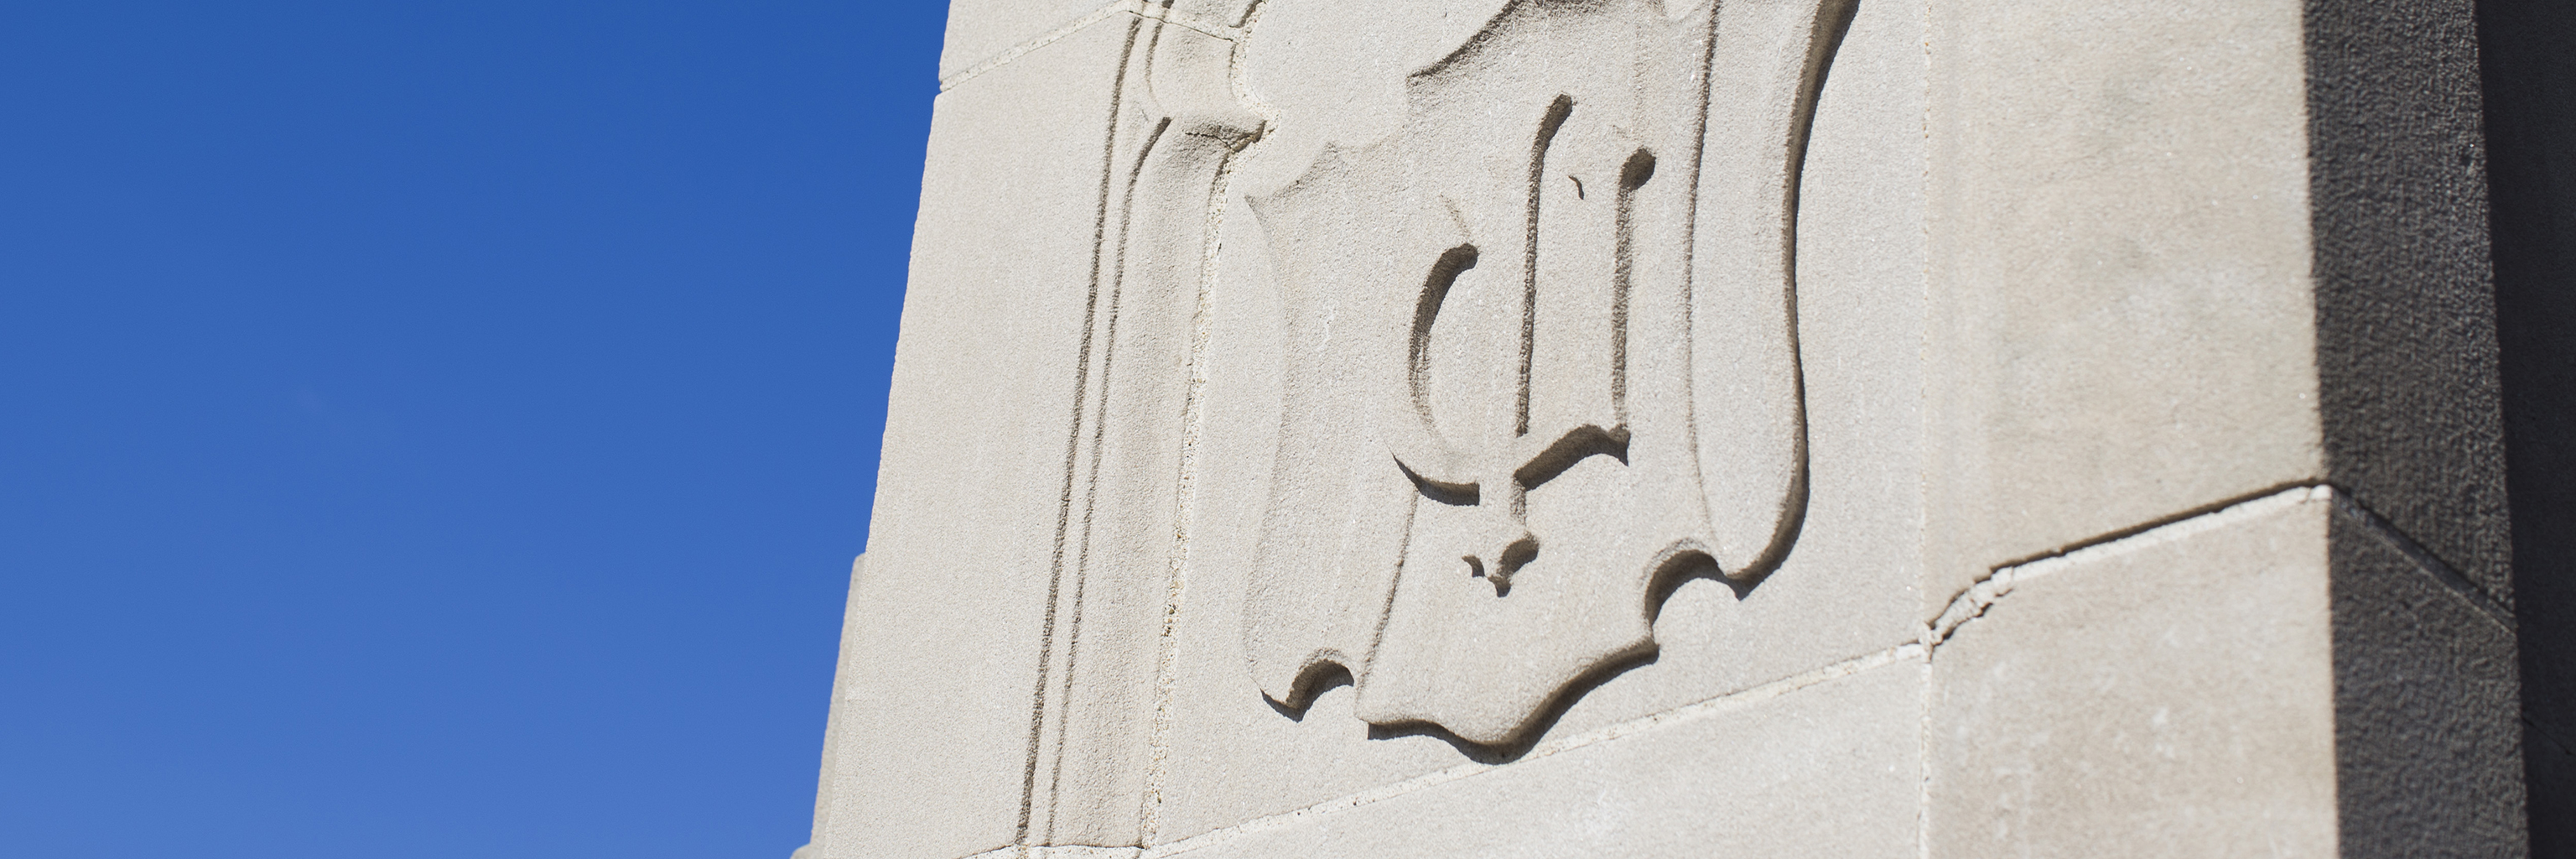 Image of a symbol carved in limestone within the Bloomington campus arboretum.